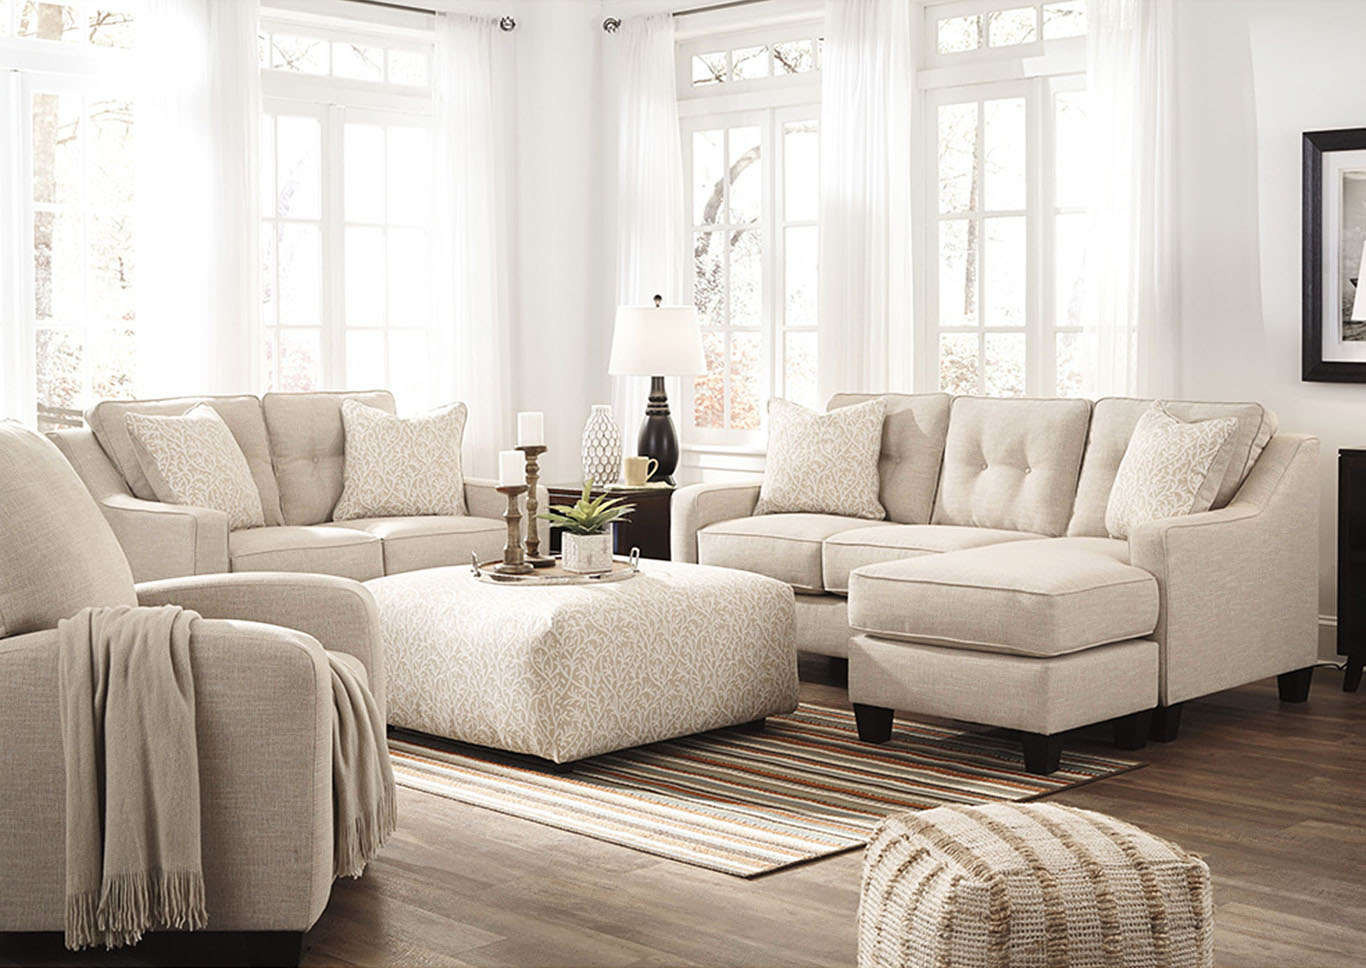 Southside Furniture Aldie Nuvell Sand Sofa Chaise & Loveseat